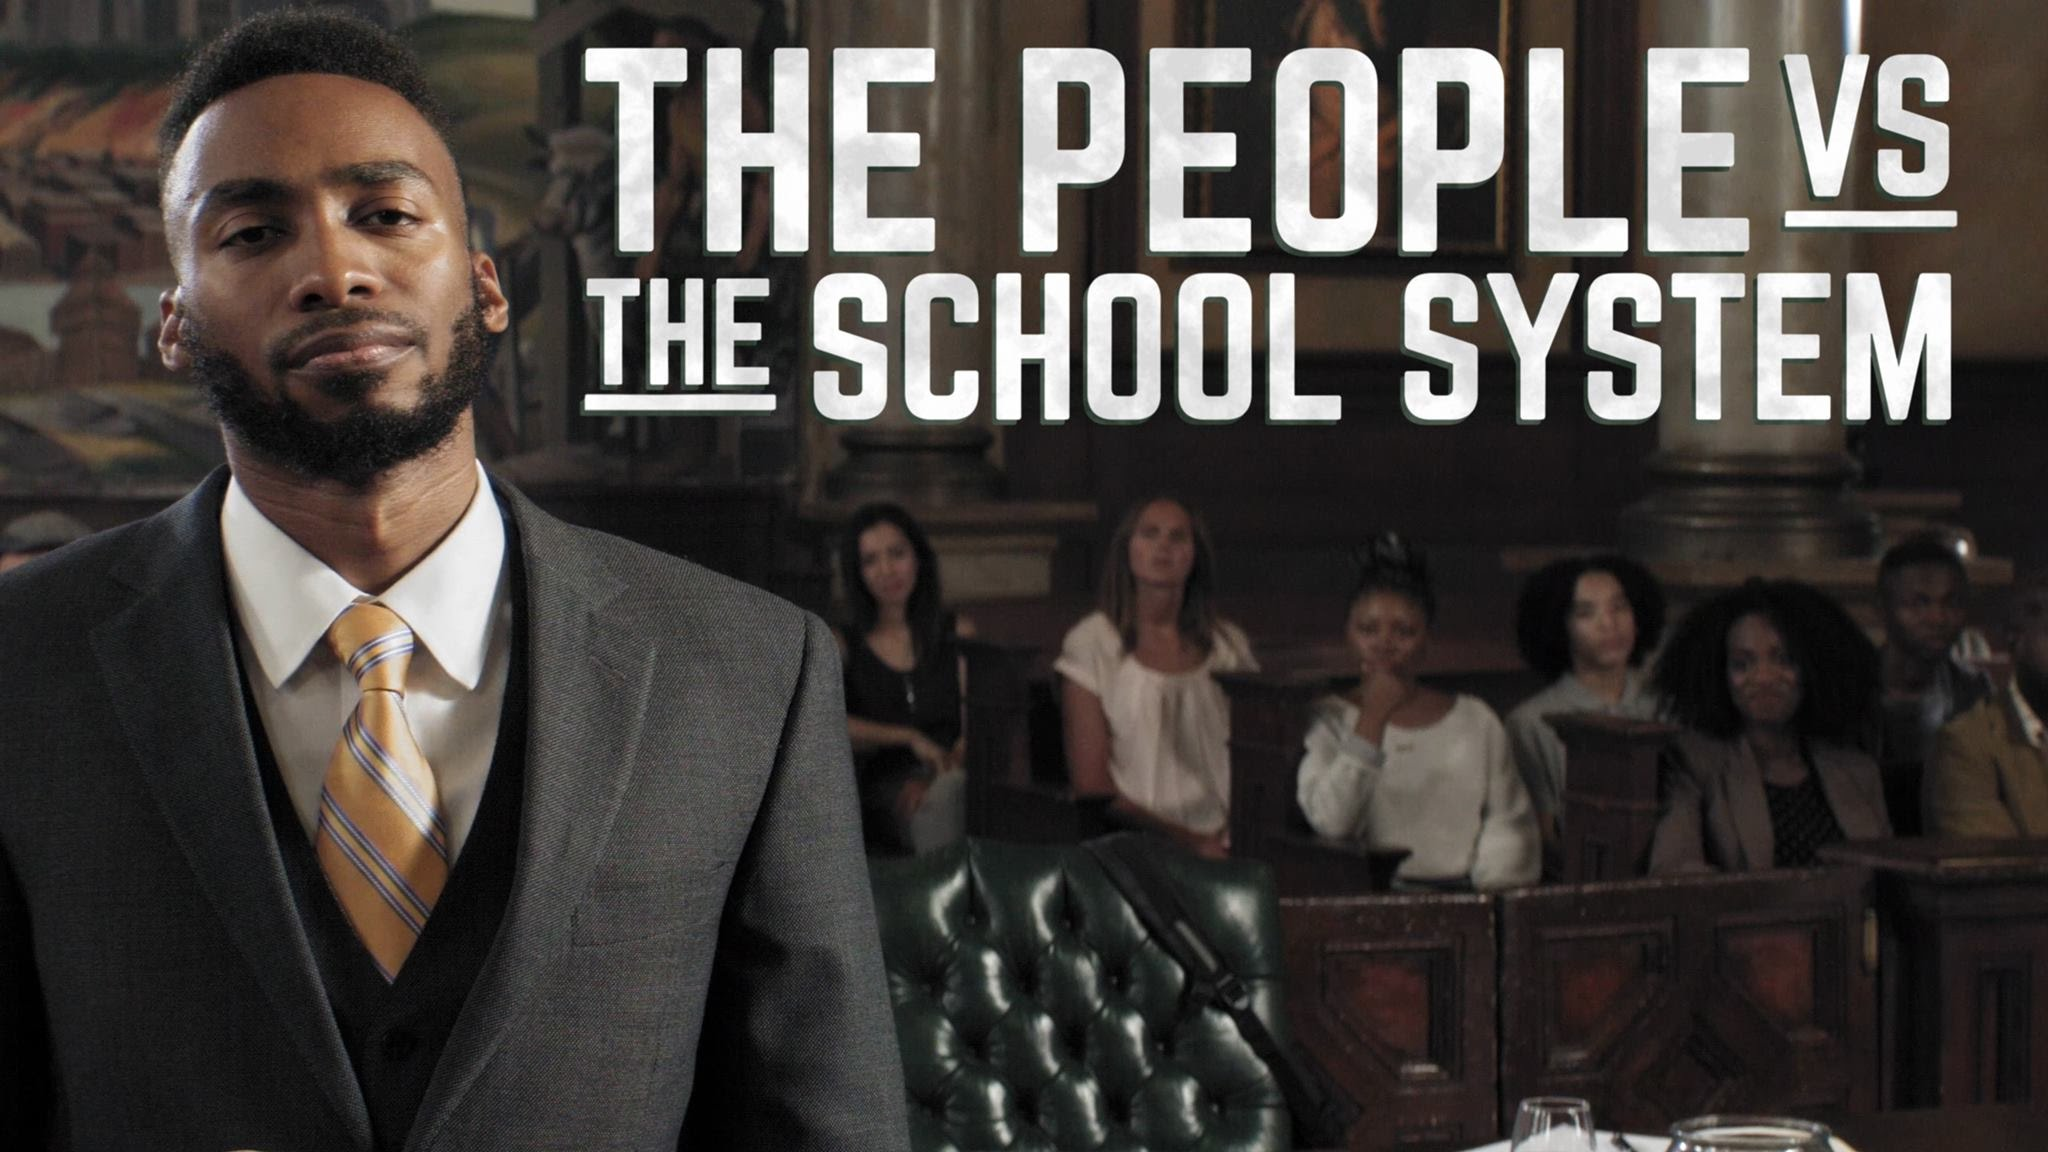 """I just sued the school system"", el discurso contra la escuela"